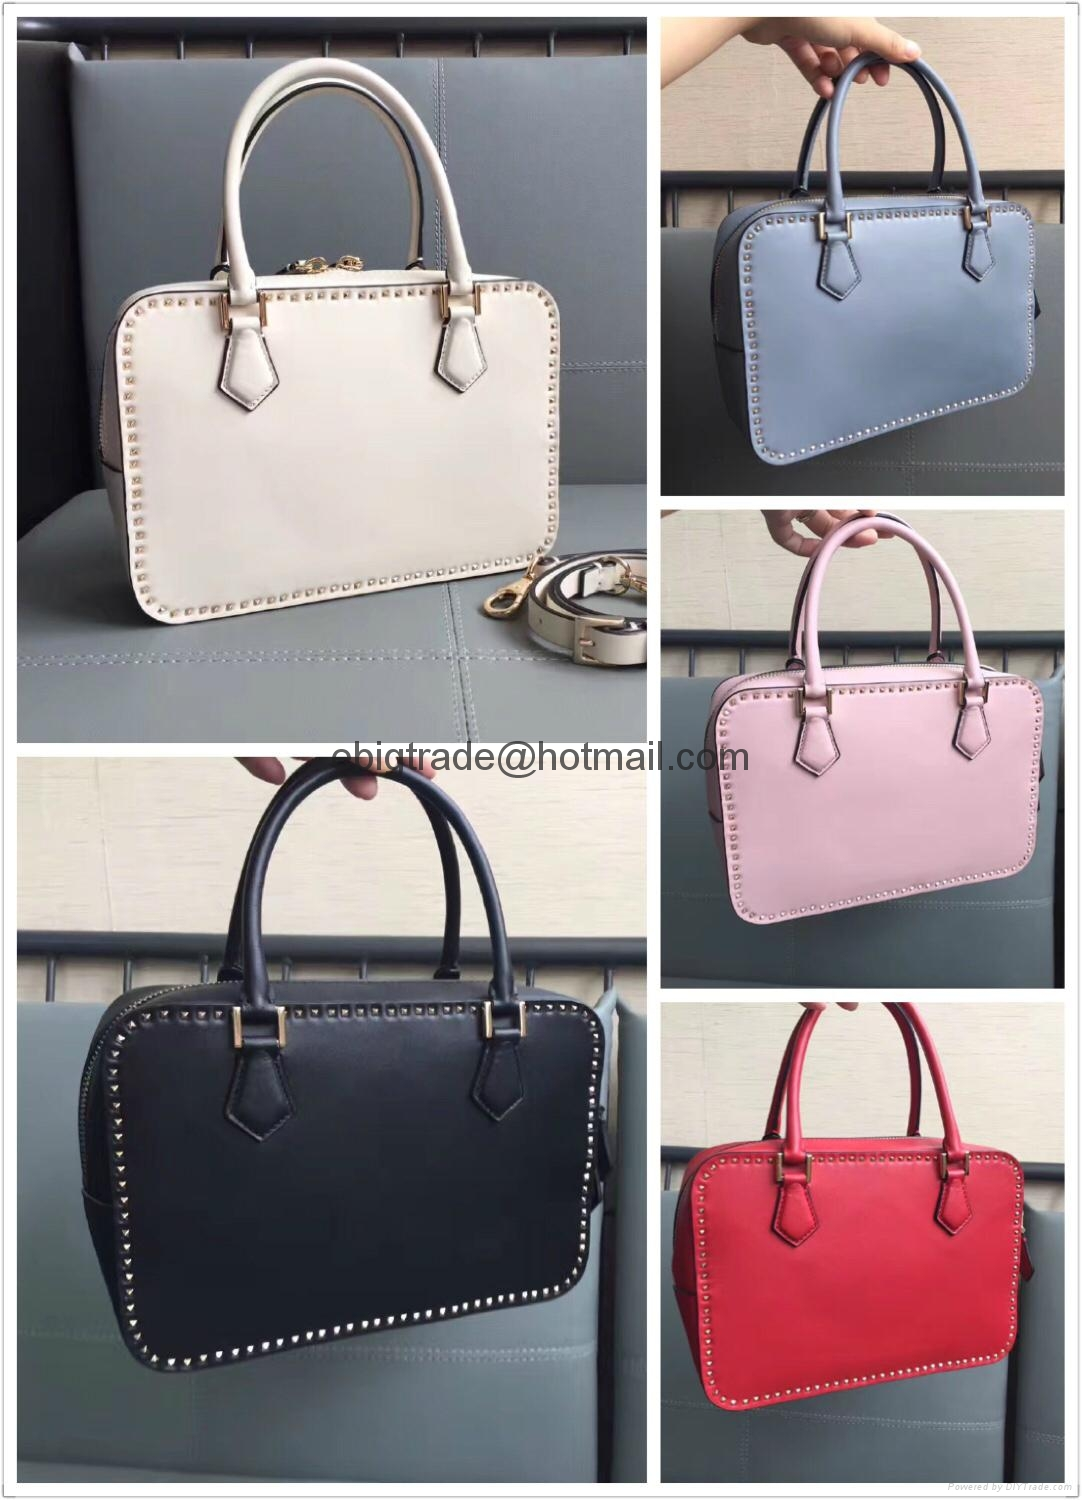 Valentino Bags for sale